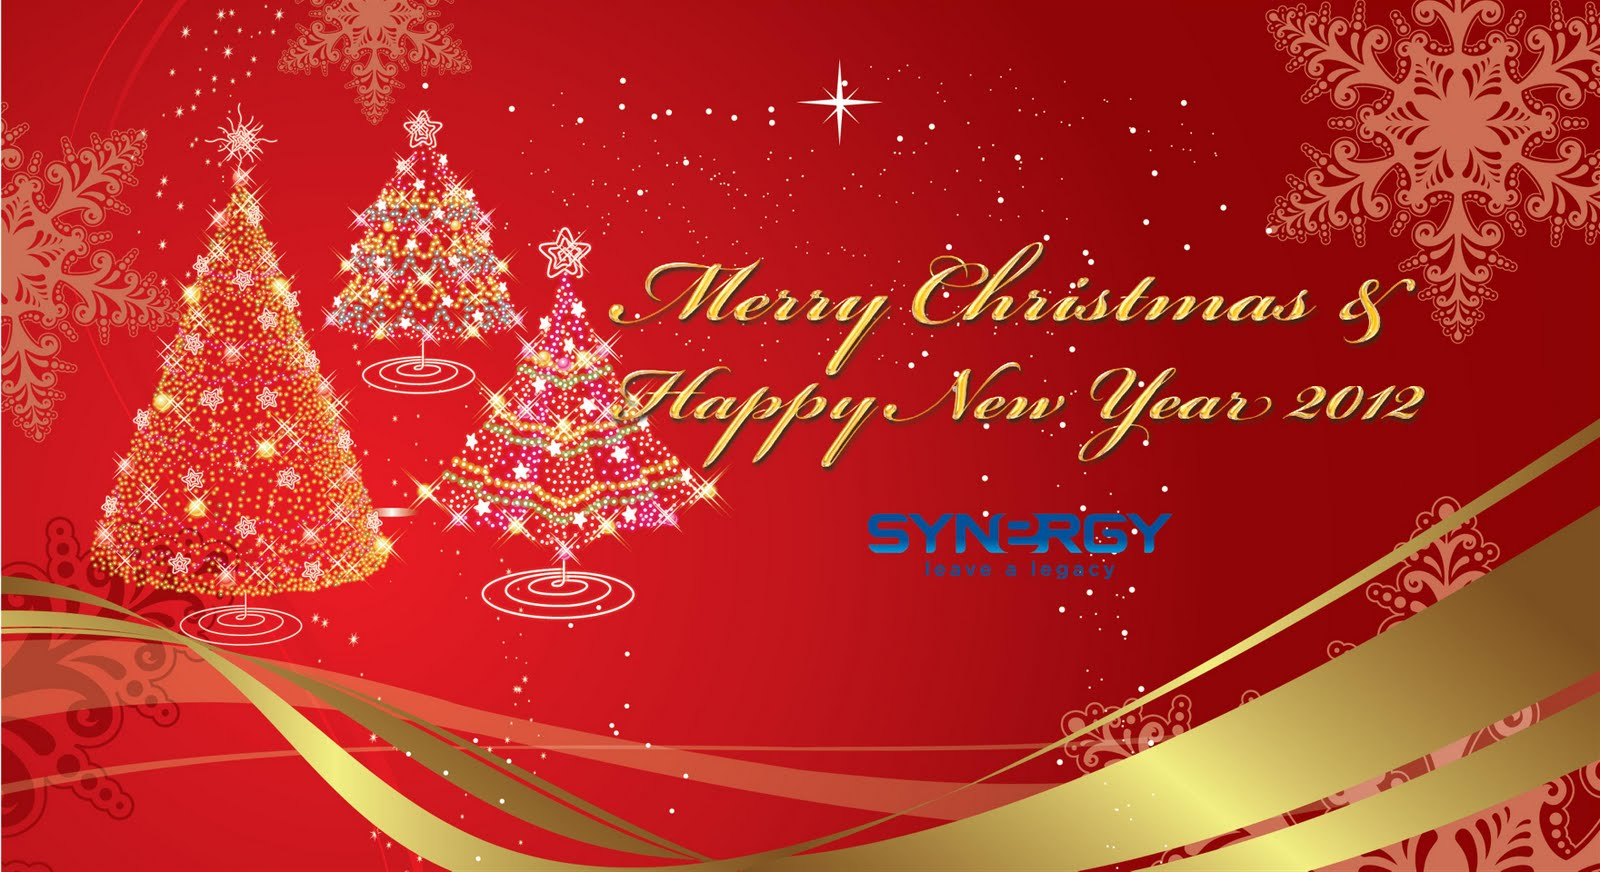 Merry Christmas amp Happy New Year . 1600 x 872.Happy Christmas And New Year In Polish